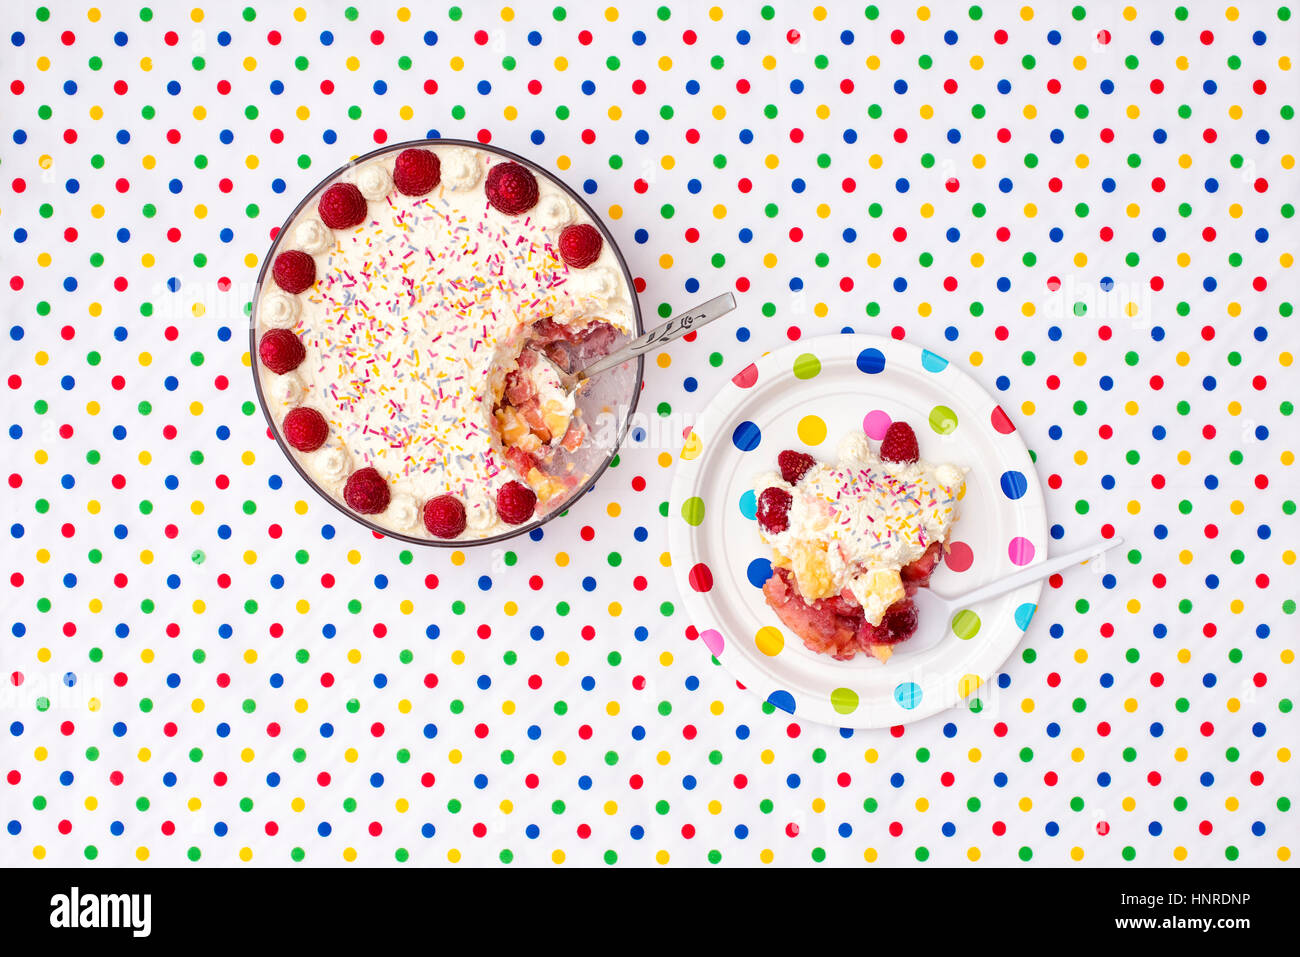 Trifle on a colourful polka dot plate and table cloth - Stock Image